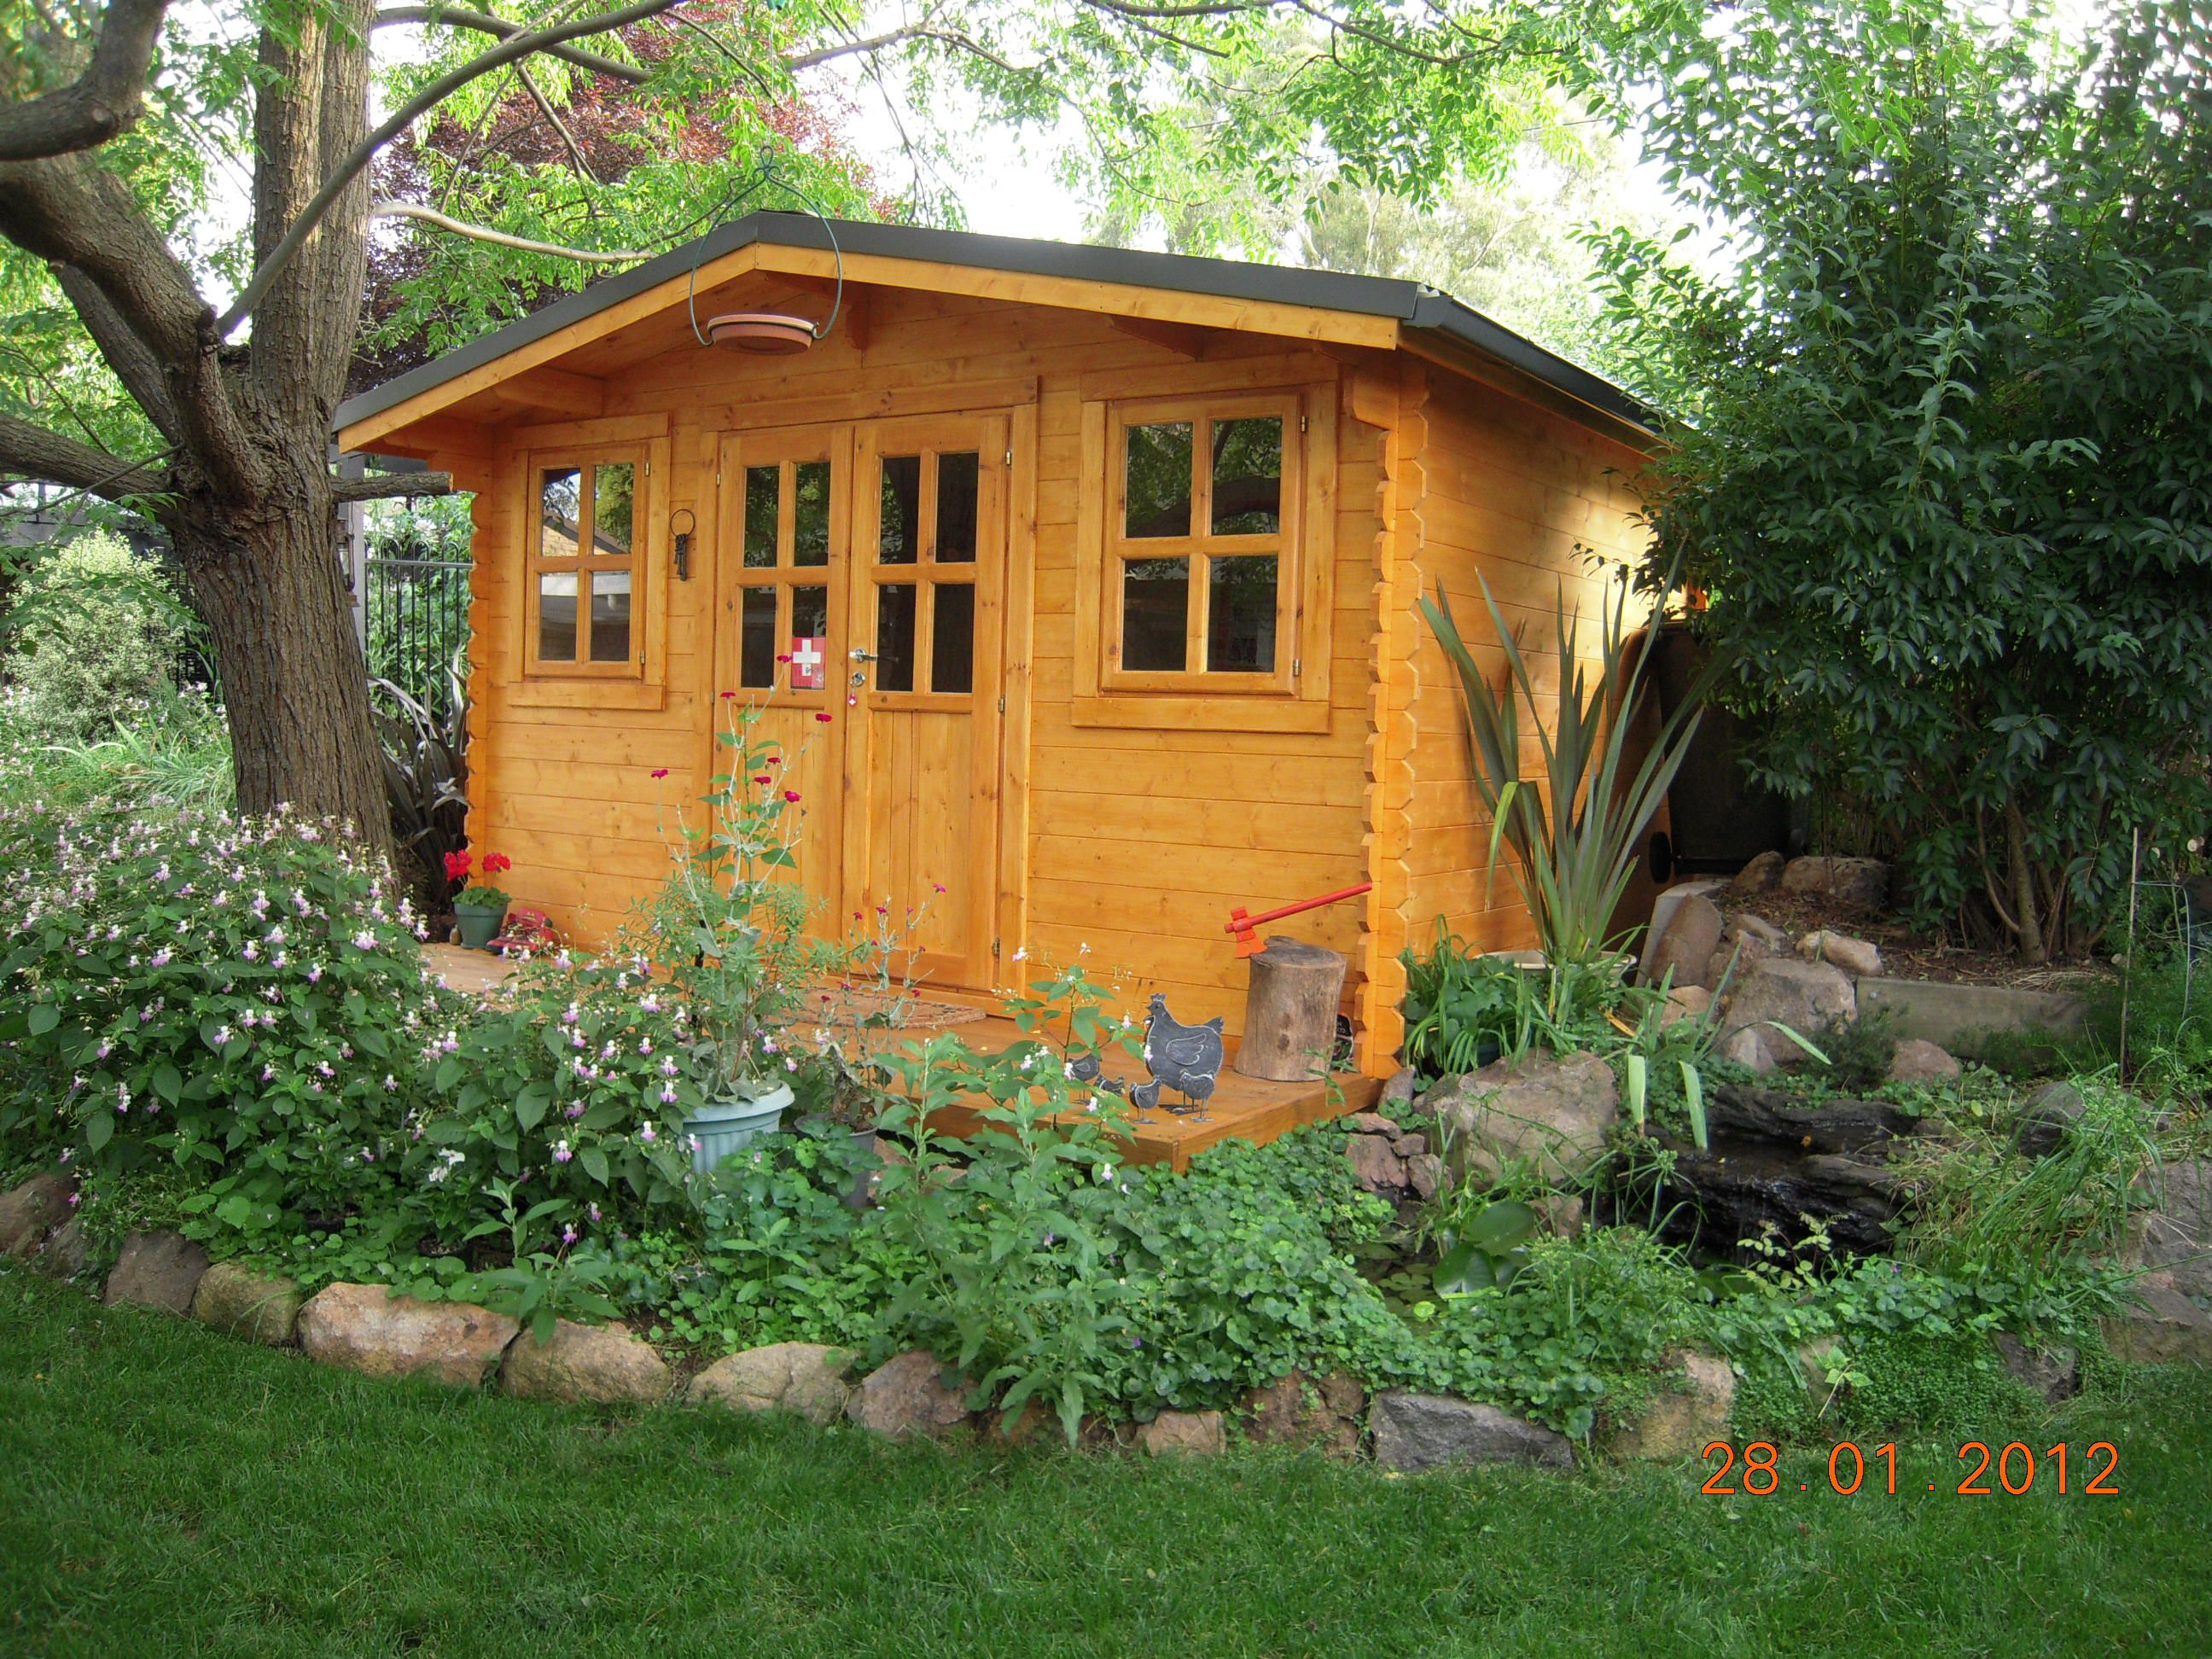 DIY Kit Log Cabins, Kit Homes, Backyard Sheds, Farm Sheds, Granny Flats